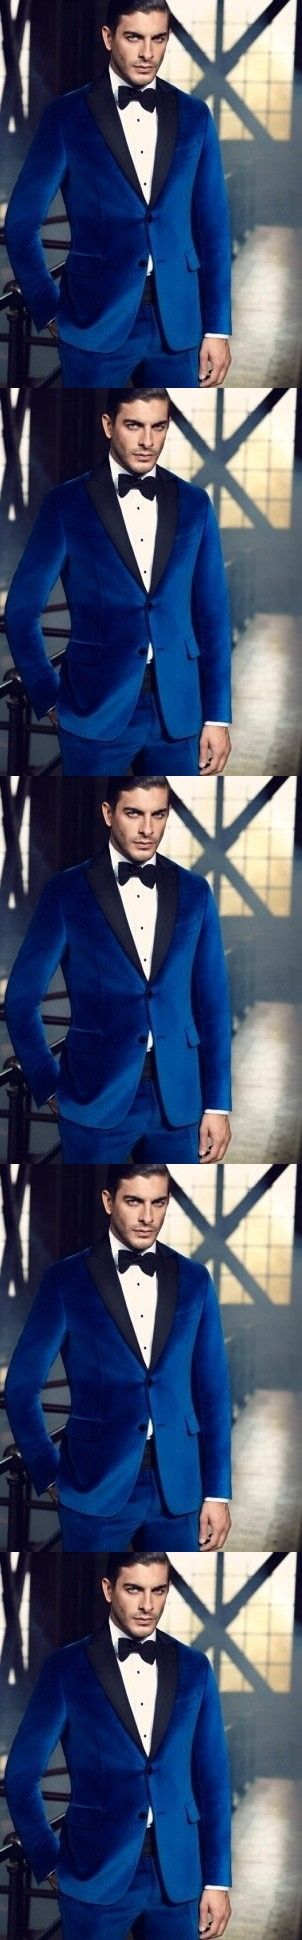 Blue collar custom Formal Tuxedo / Wedding Suit / groom wearing a Tuxedo Suit (3 pieces / groomsman shirt + trousers + tie)